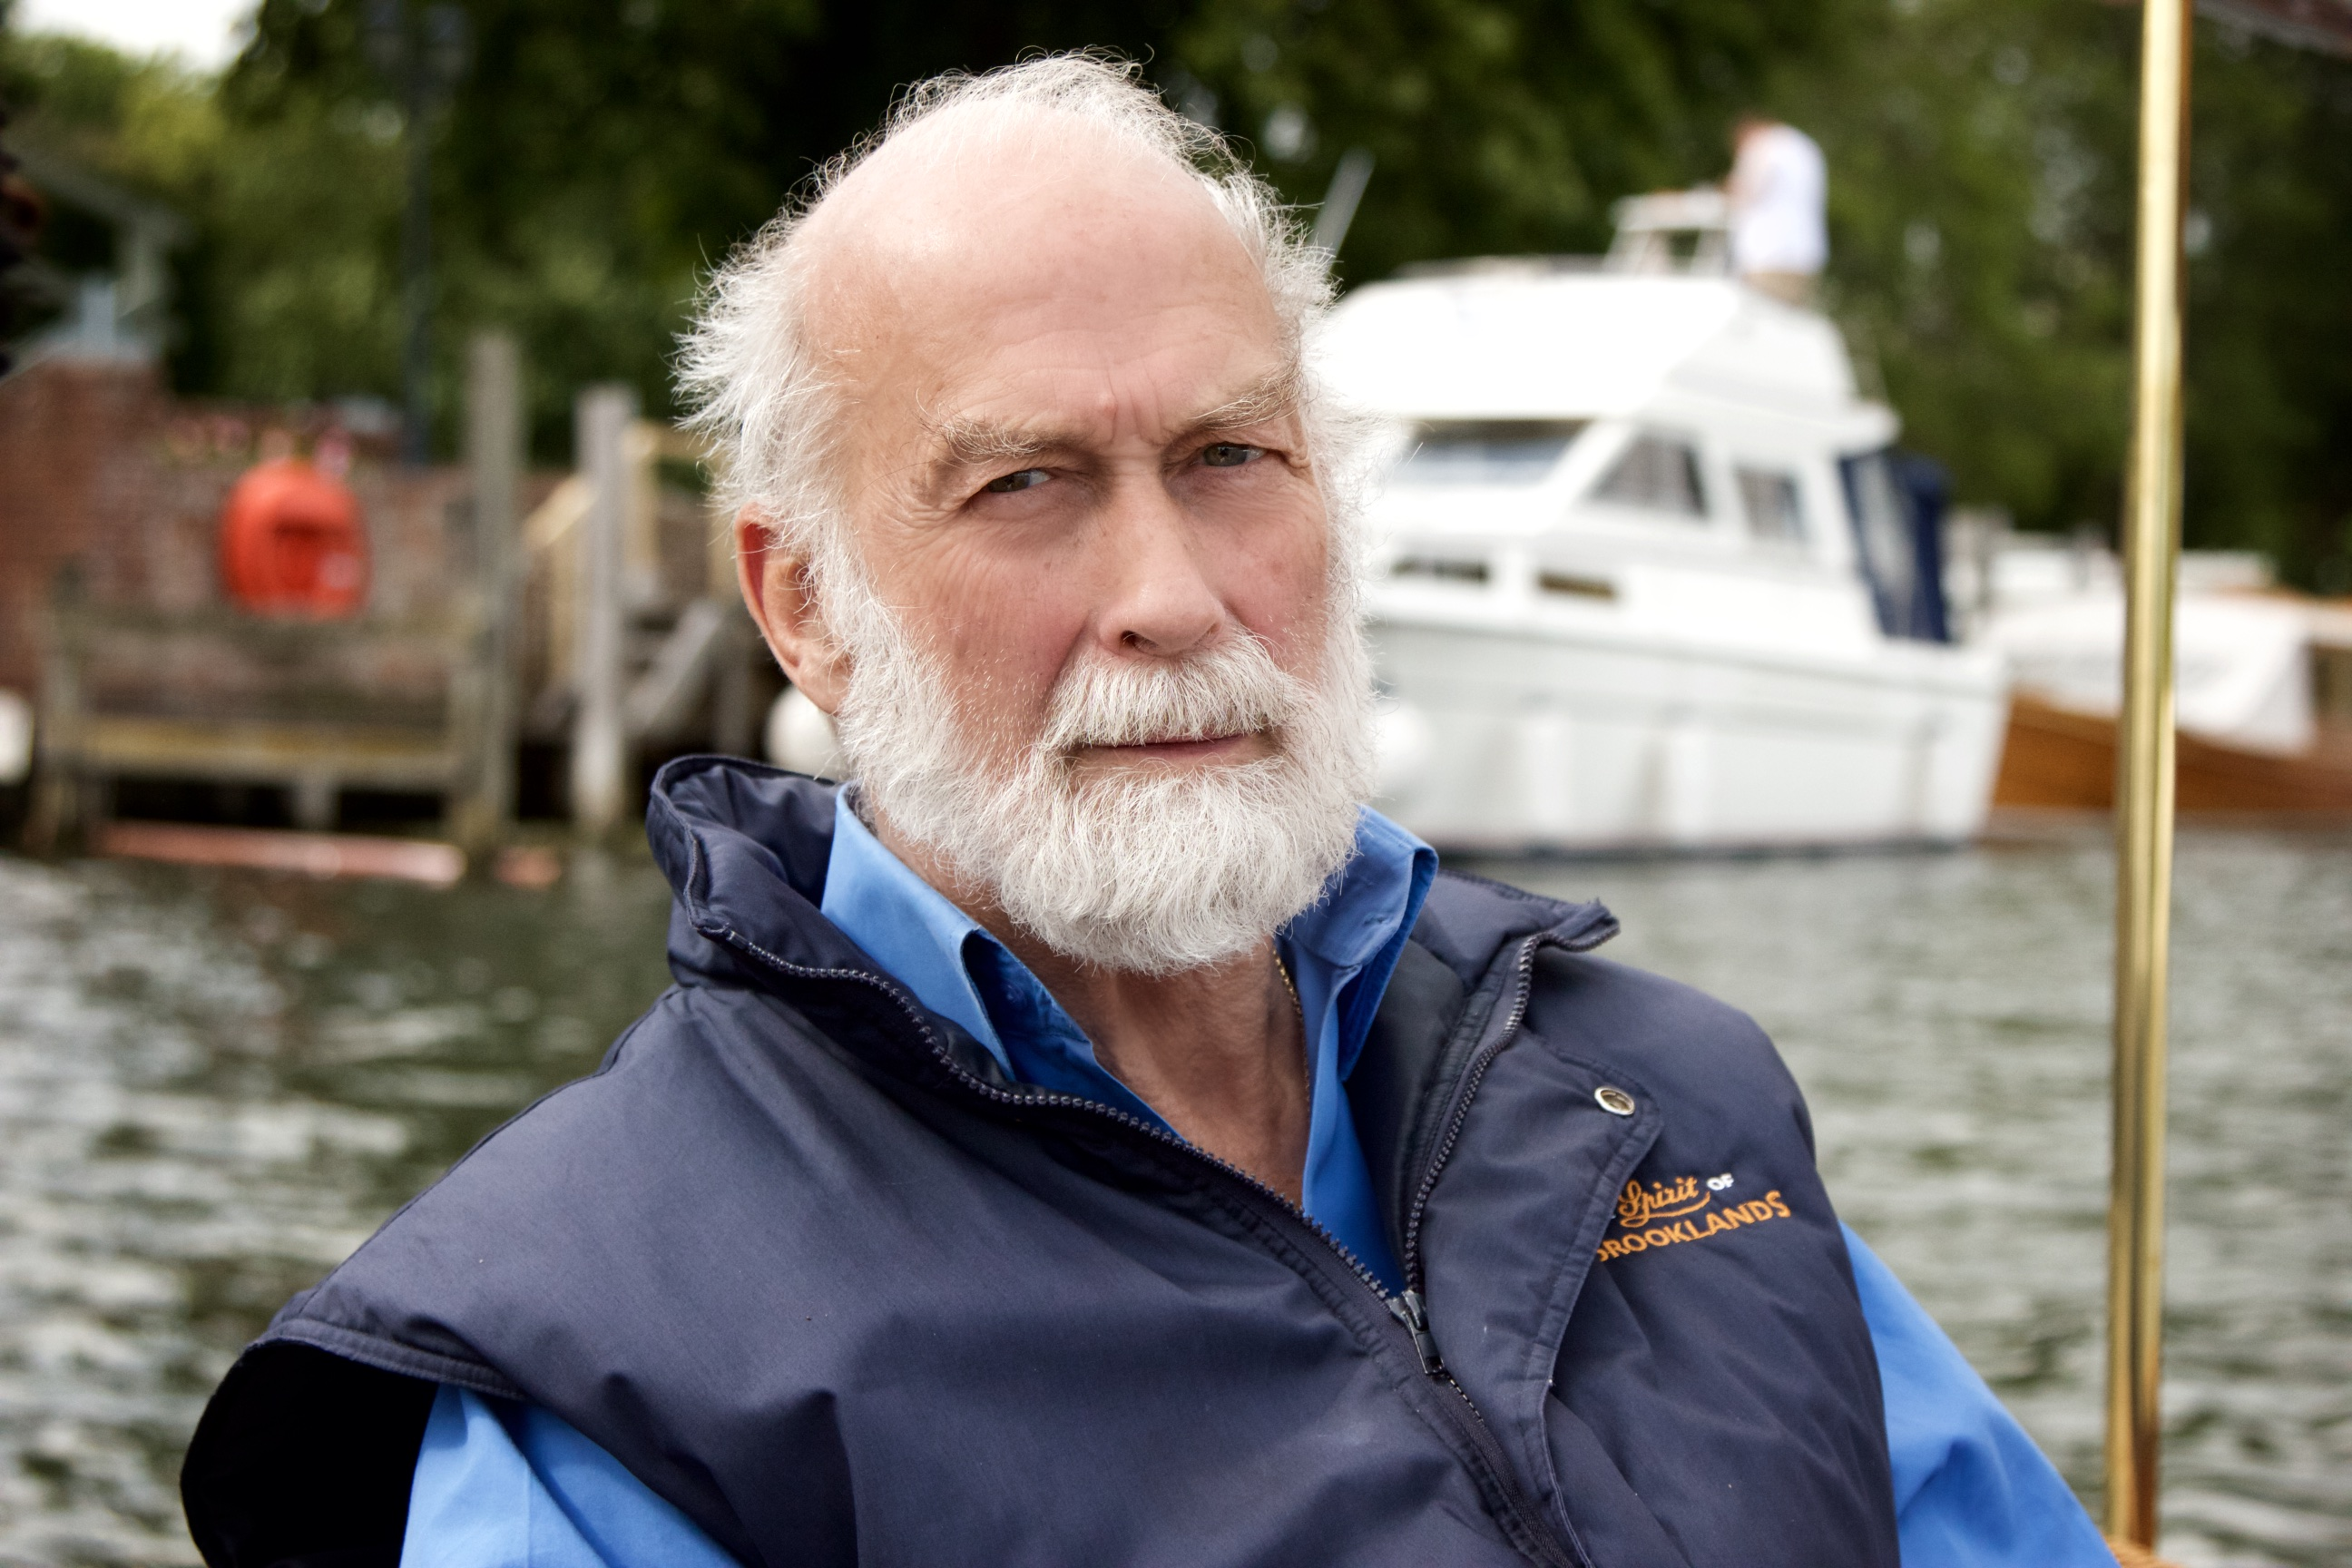 HRH Prince Michael of Kent